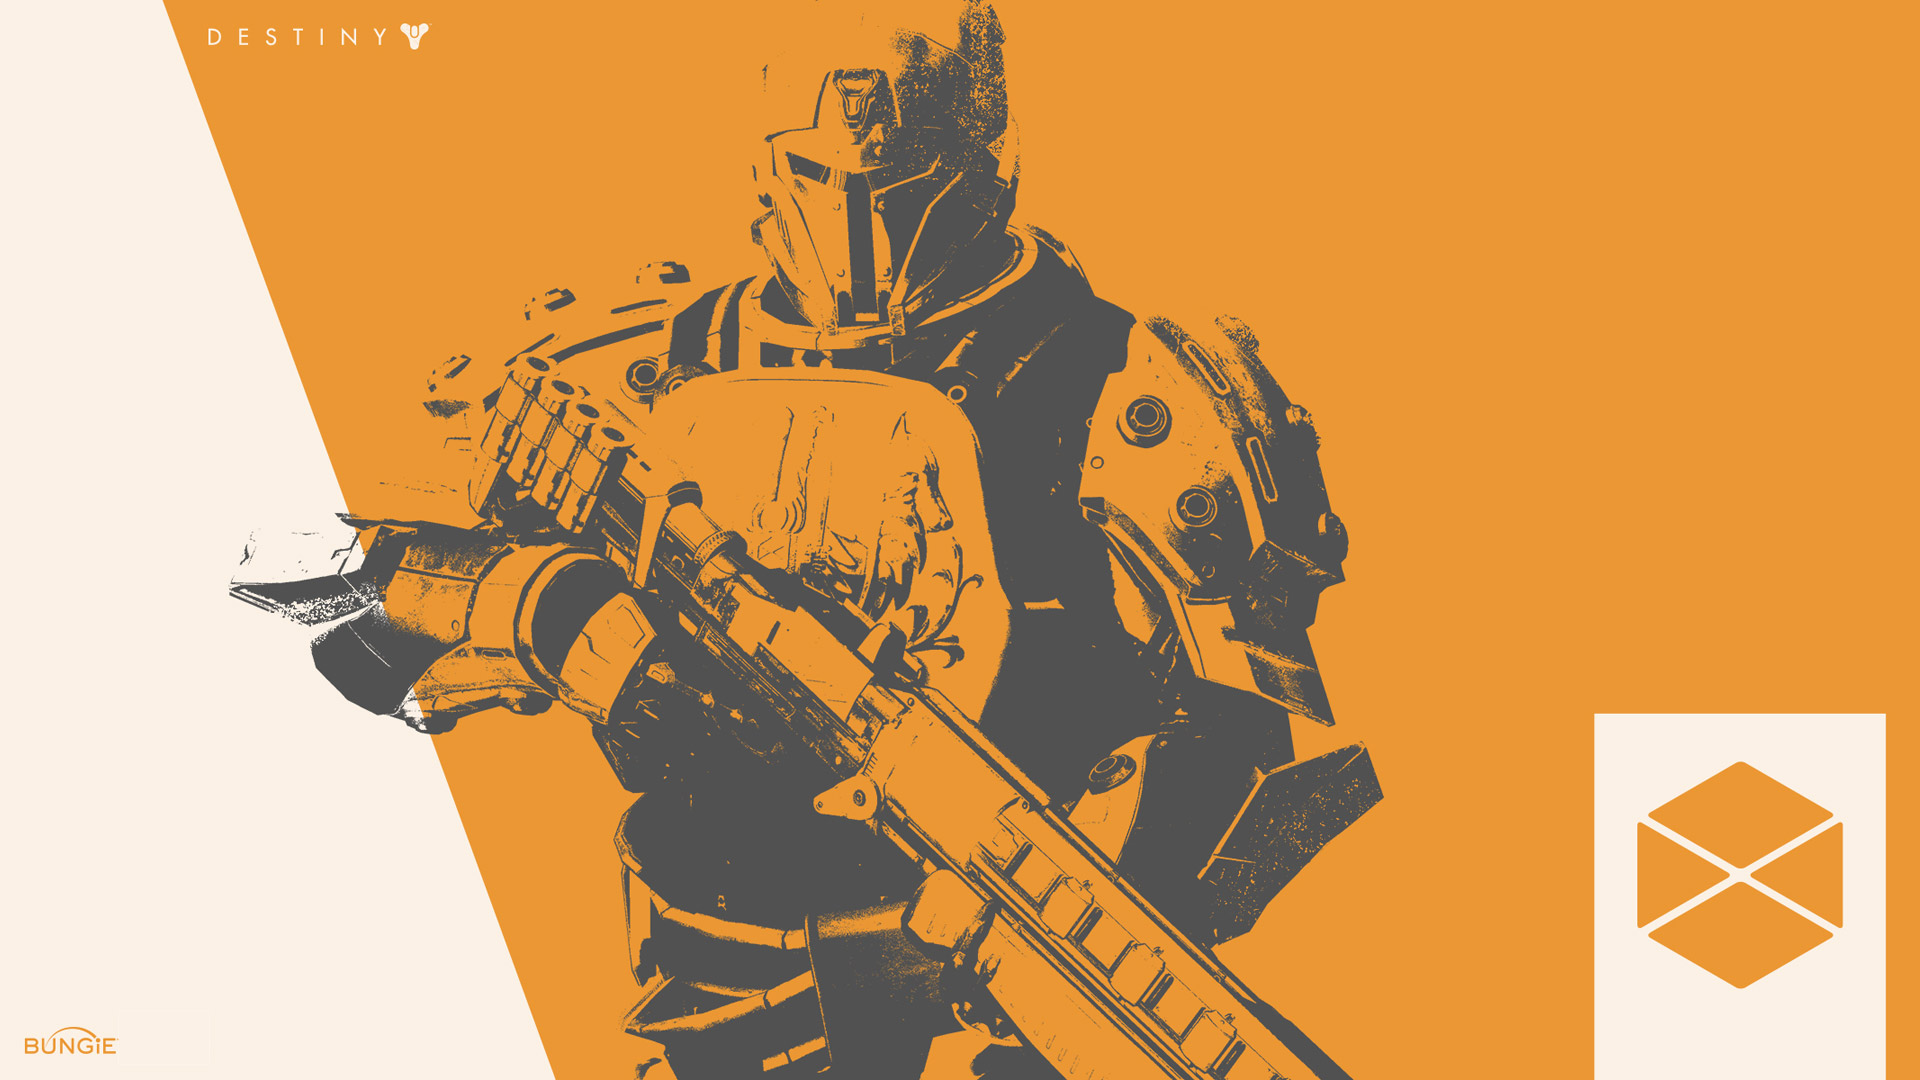 Destiny Wallpaper in 1920x1080